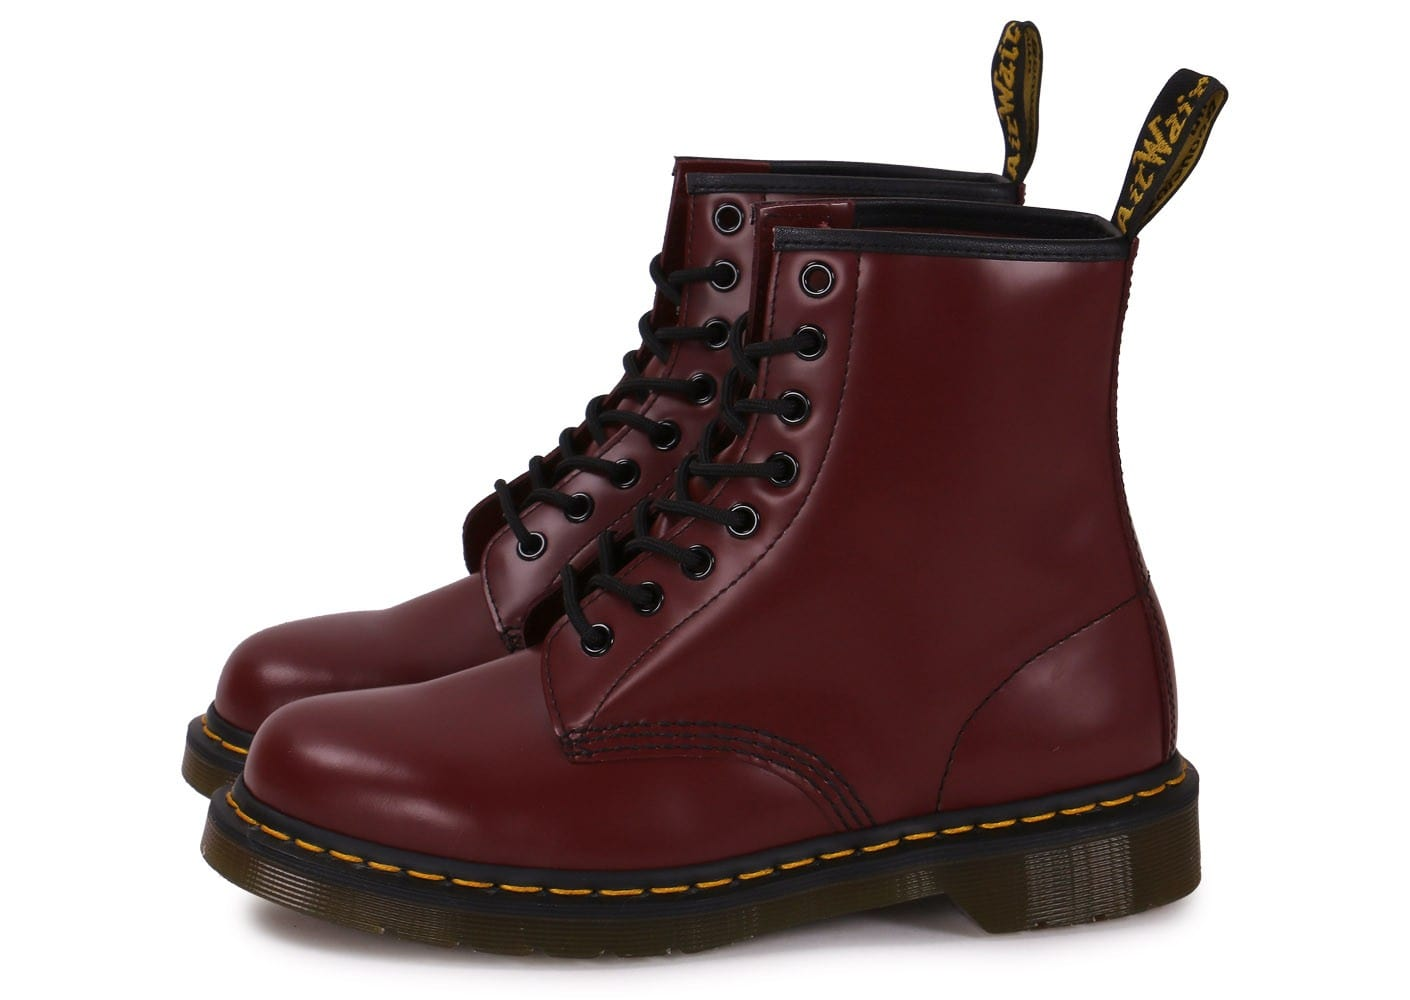 dr martens 1460 cherry red chaussures homme chausport. Black Bedroom Furniture Sets. Home Design Ideas